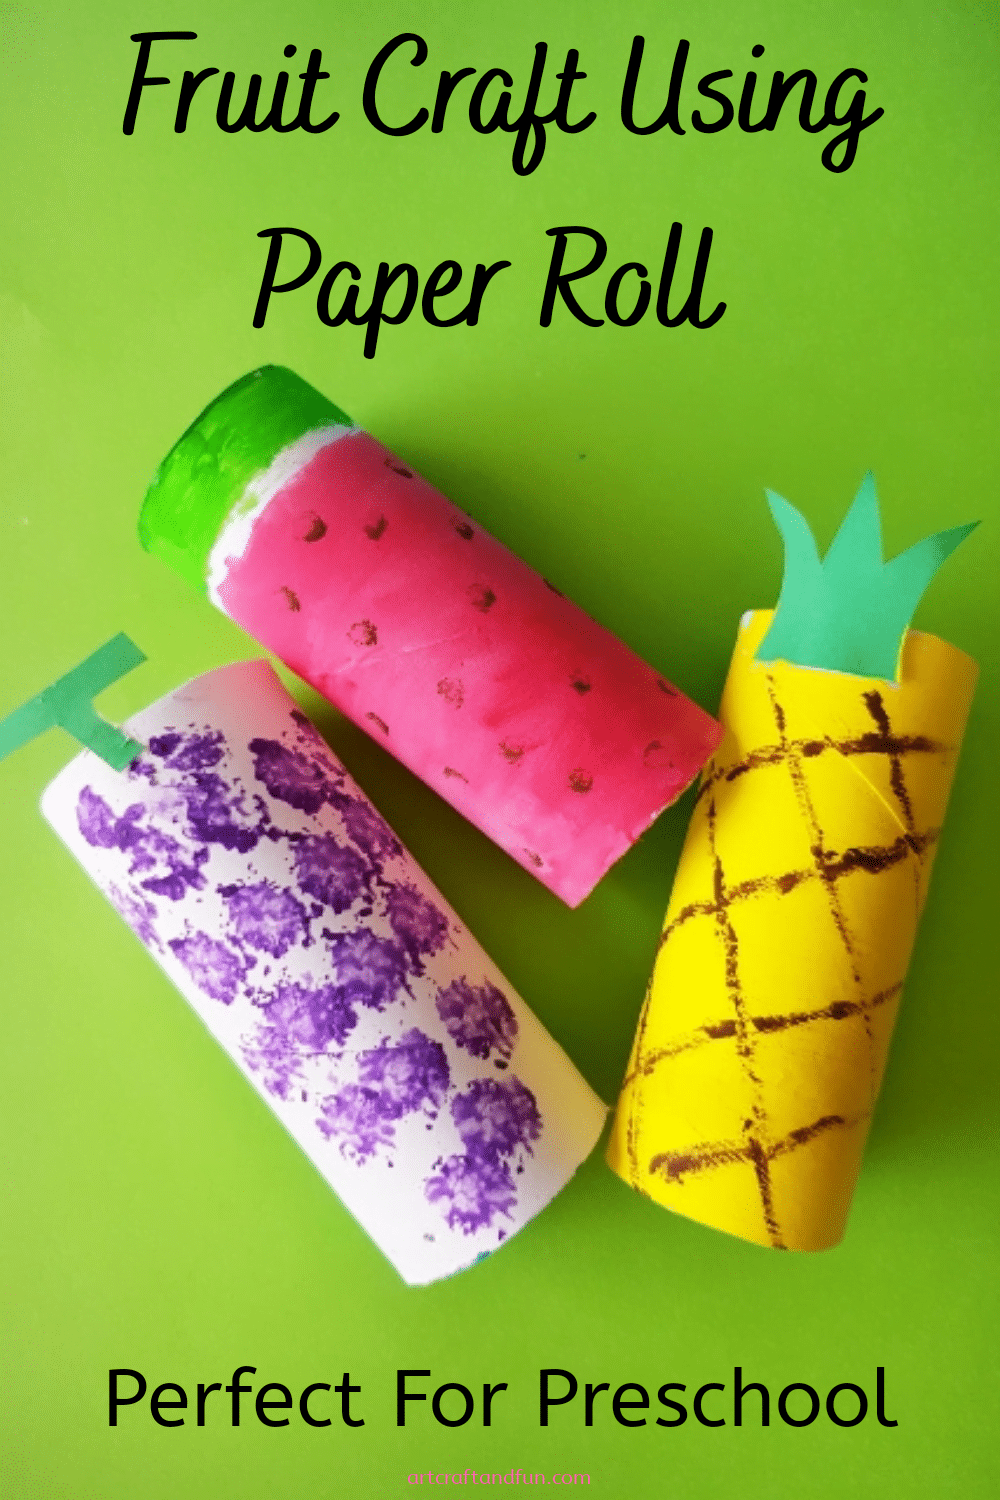 Fruit Craft Using Paper Roll